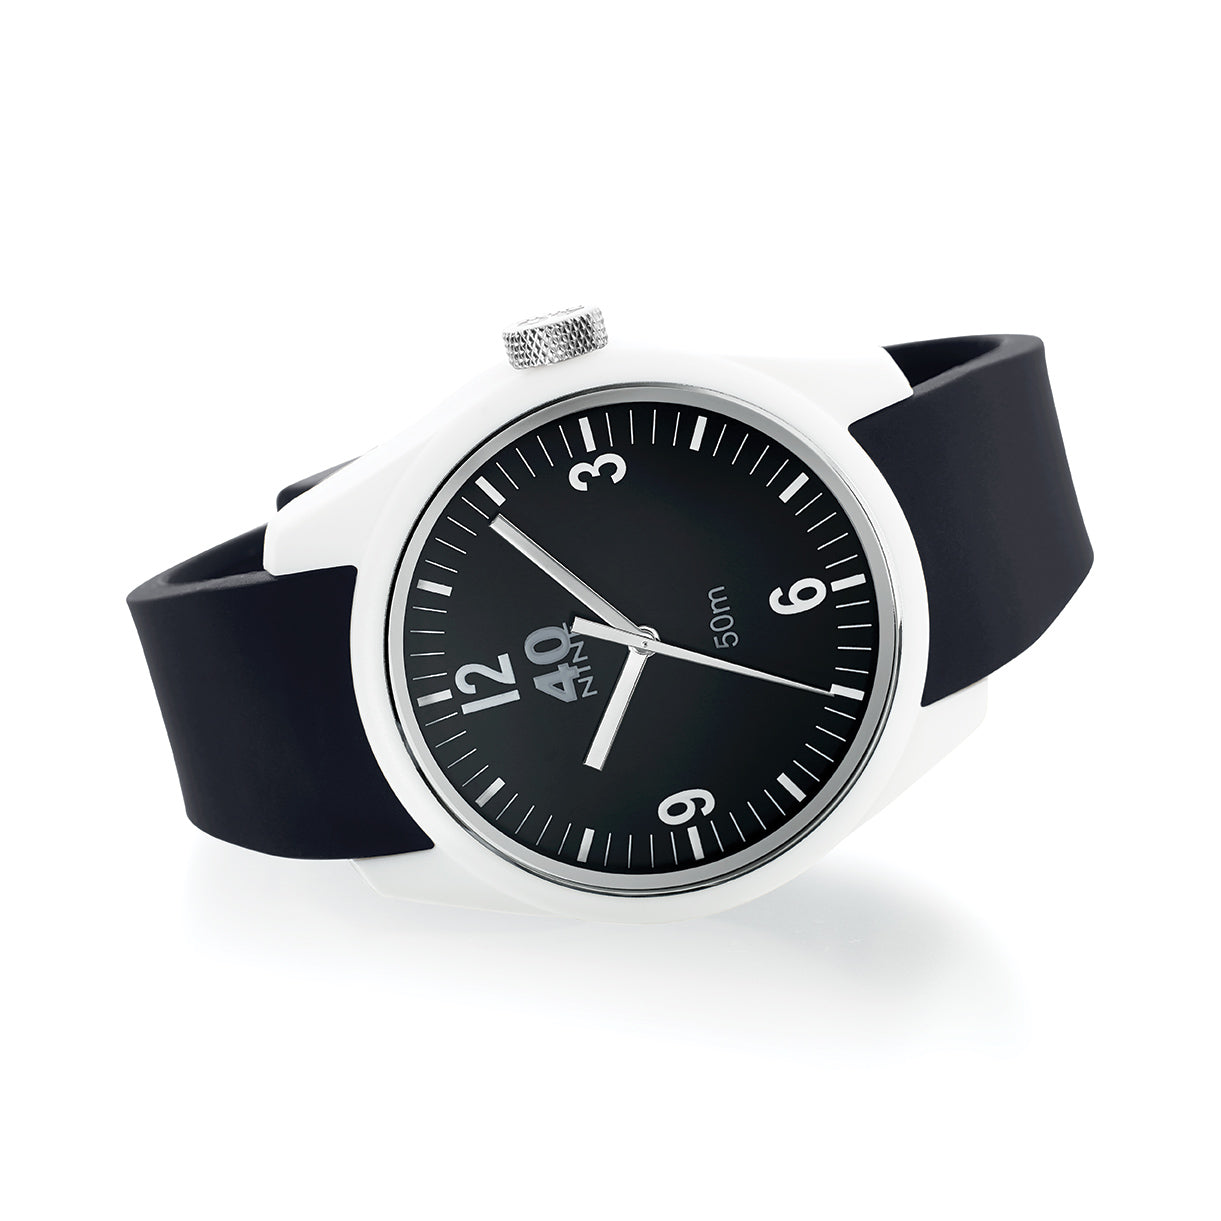 and yet sleek artistic simplistic watches tiqtoq magazine moduco